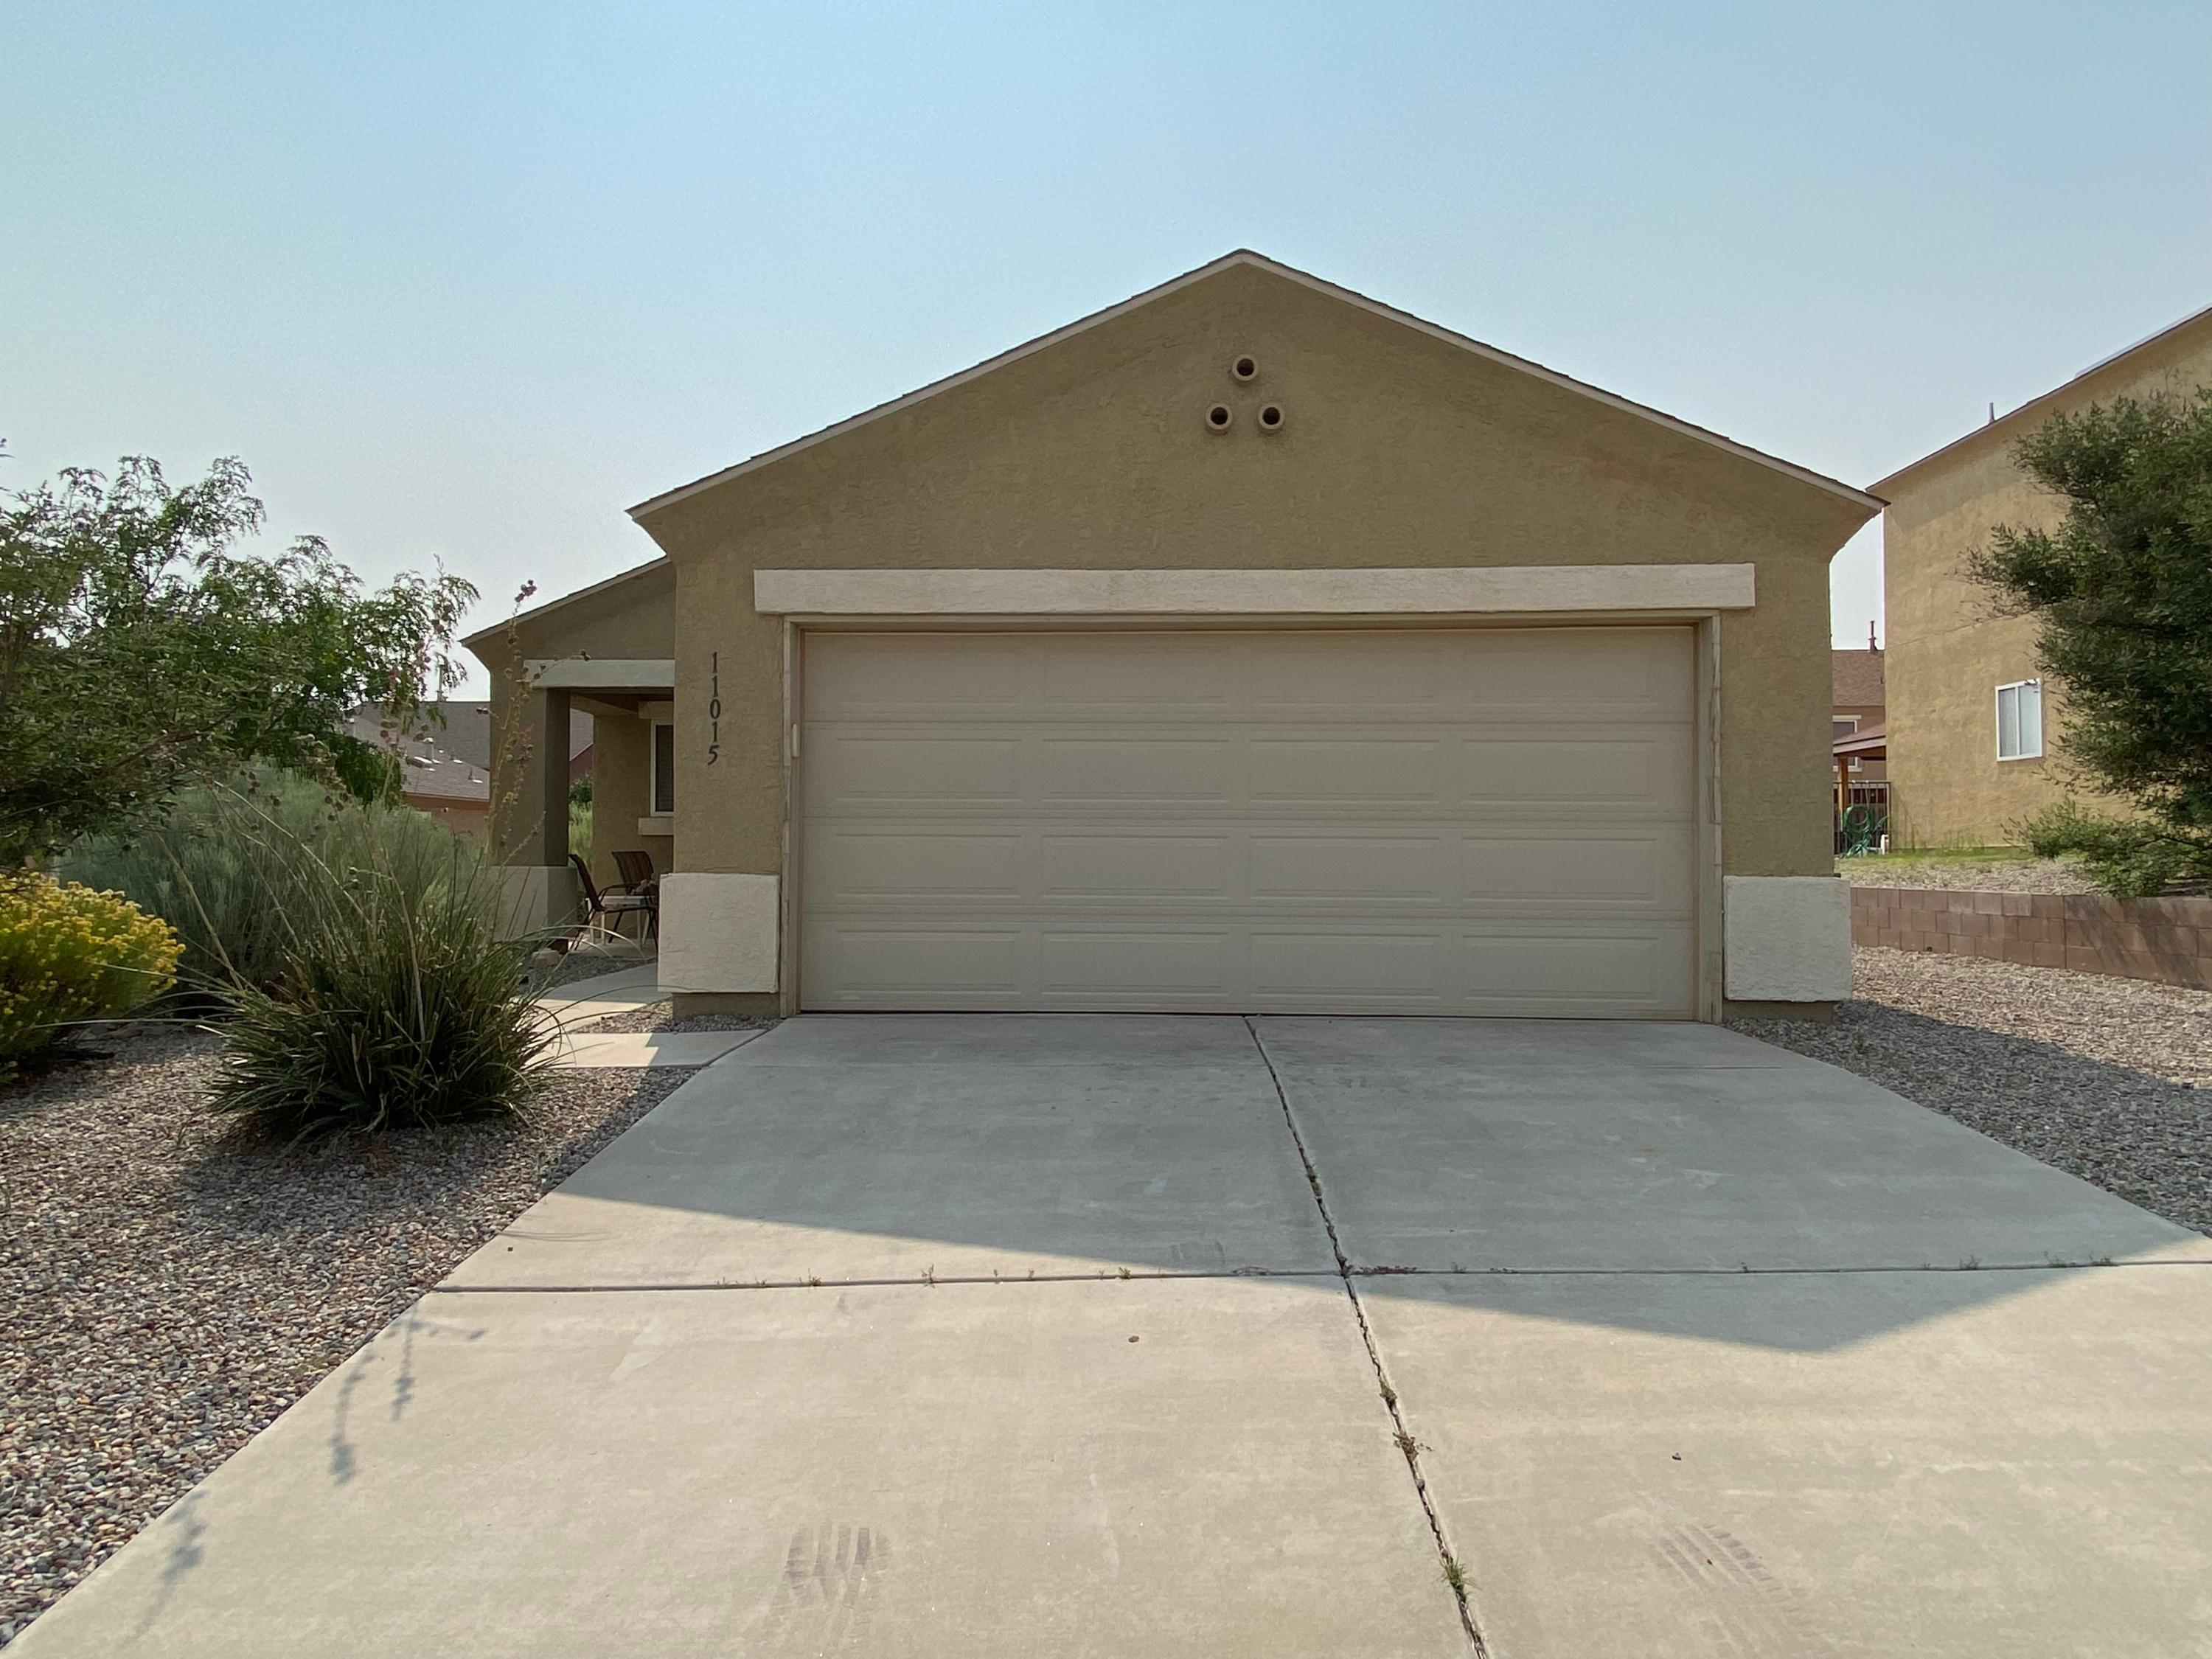 Beautiful two bedroom home on a large landscaped lot.  Open floor plan with good sized rooms.  New carpet installed in living room and bedrooms.  New A/C unit installed in 2021.  Master bath has been redesigned for wheelchair accessibility.